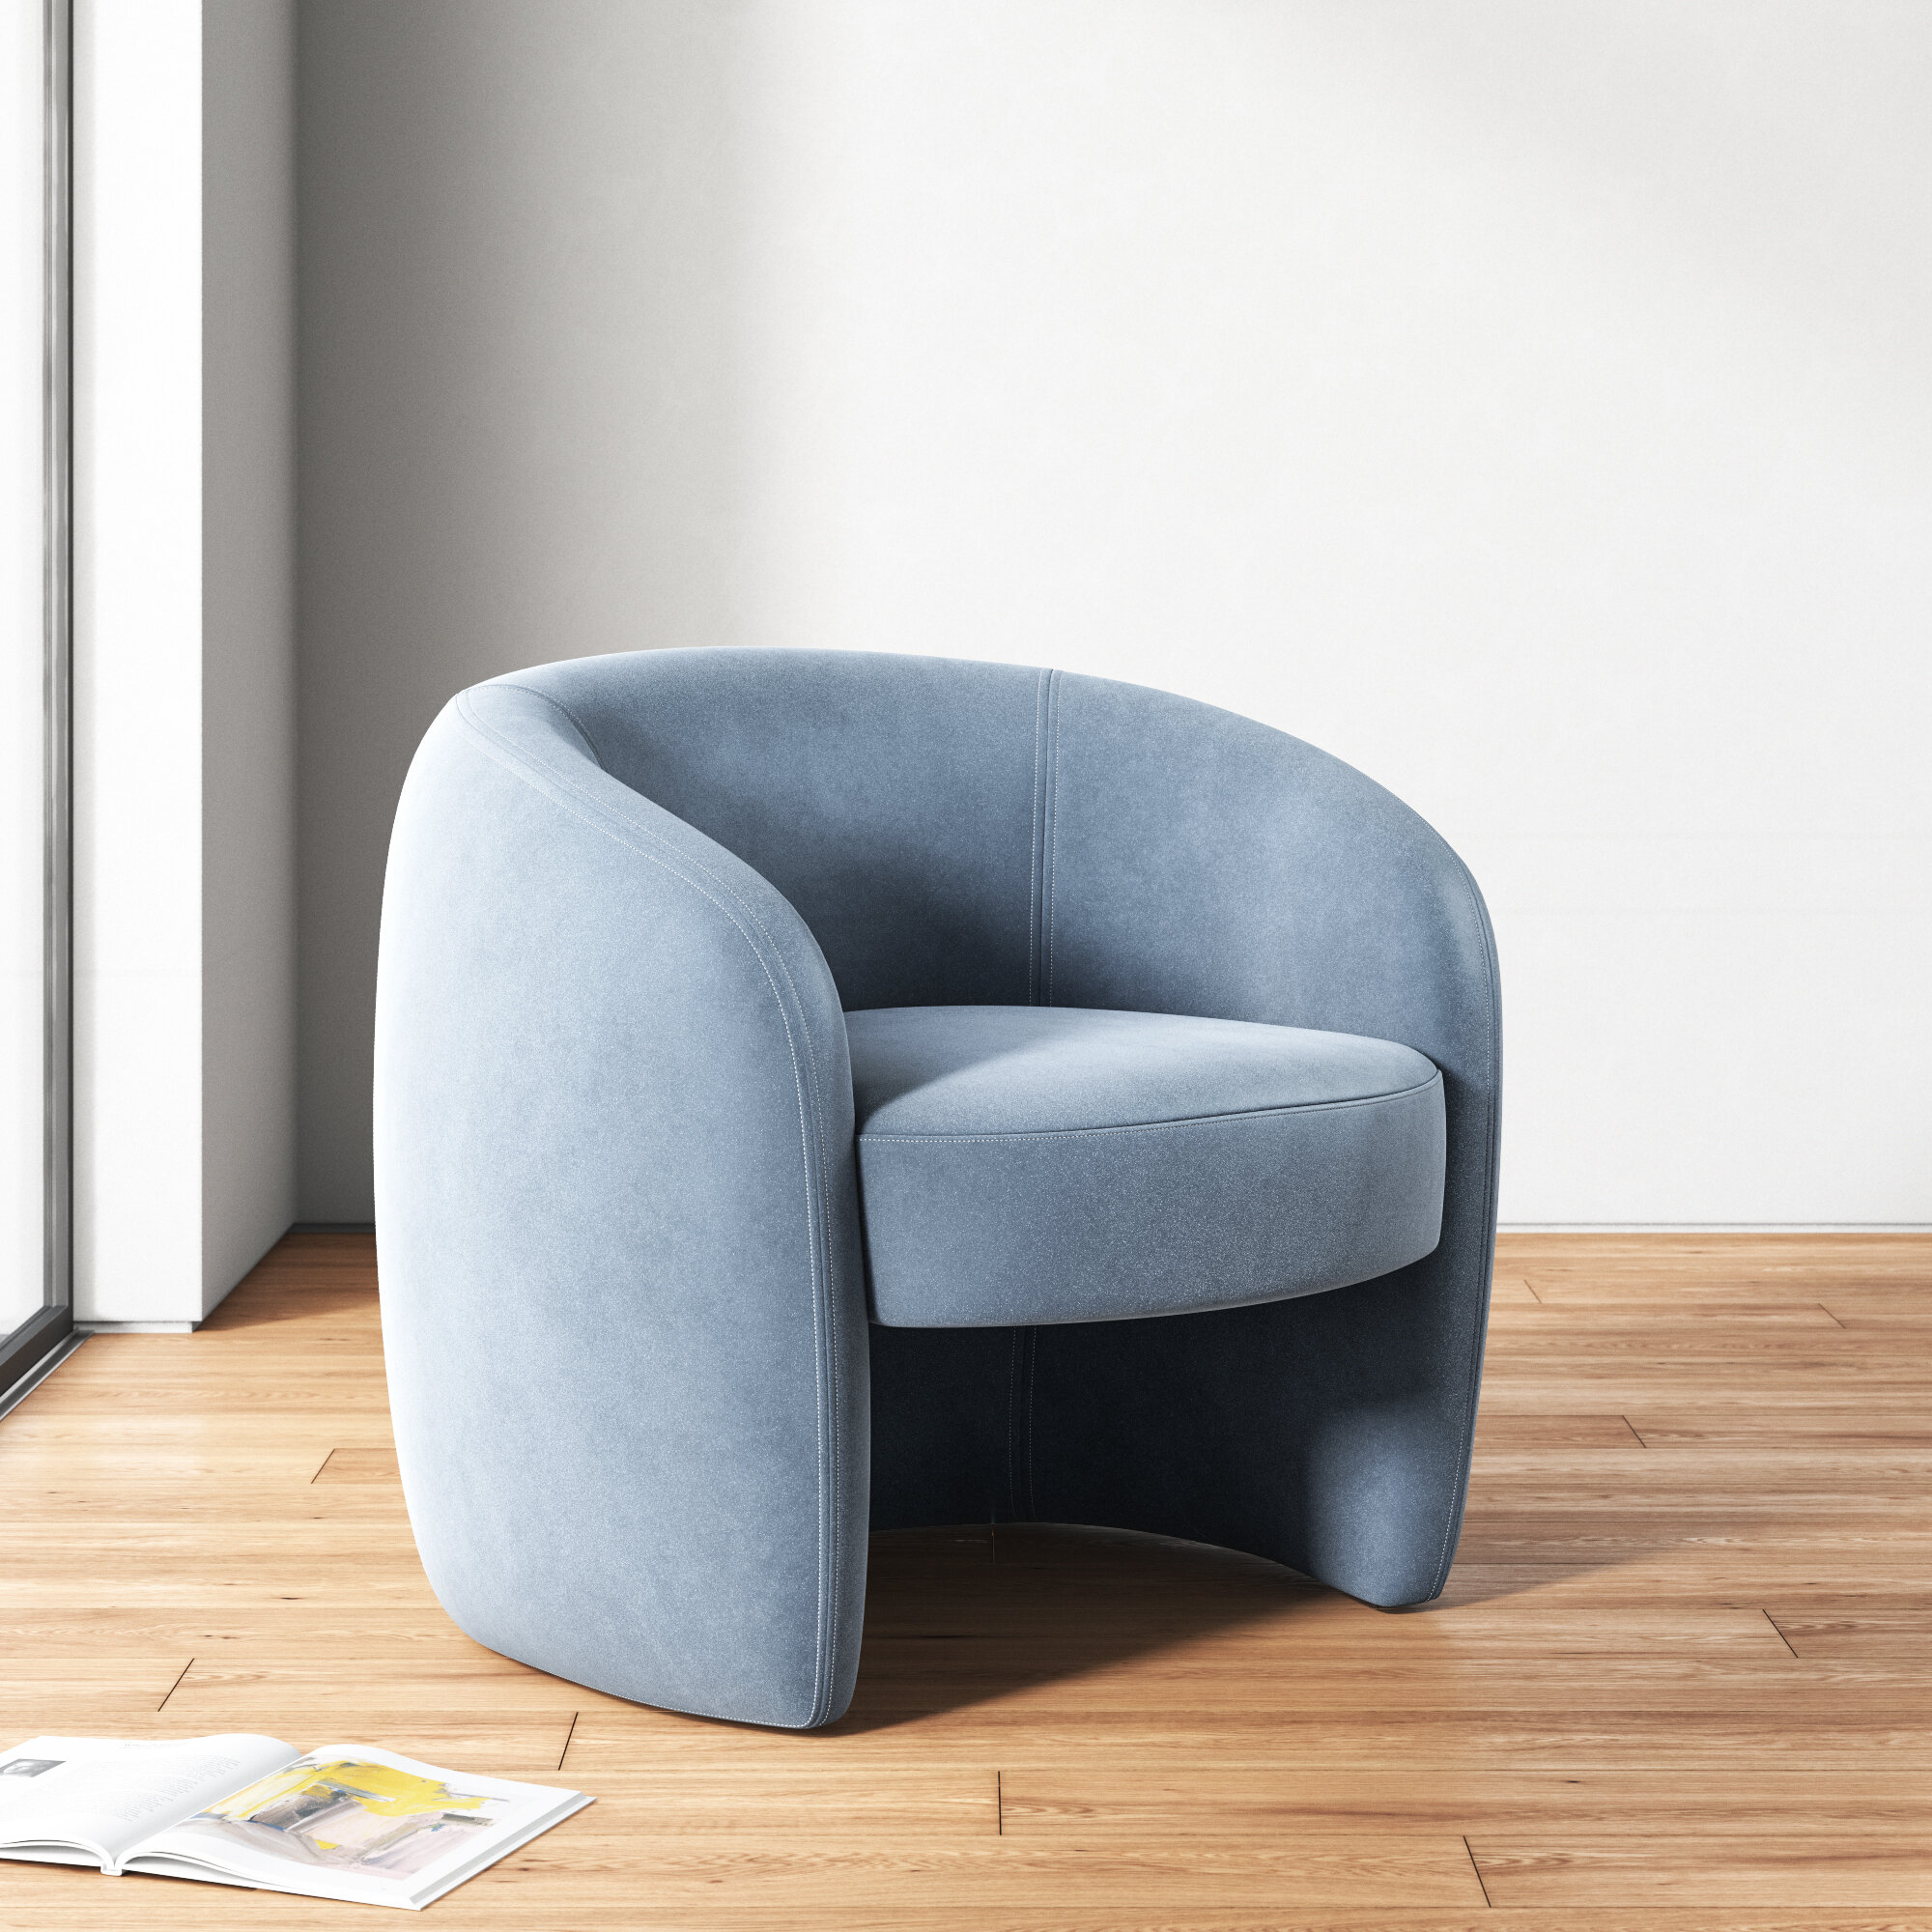 Round Arm Small Accent Chairs You'Ll Love In 2021 | Wayfair With Regard To Ansar Faux Leather Barrel Chairs (View 5 of 15)